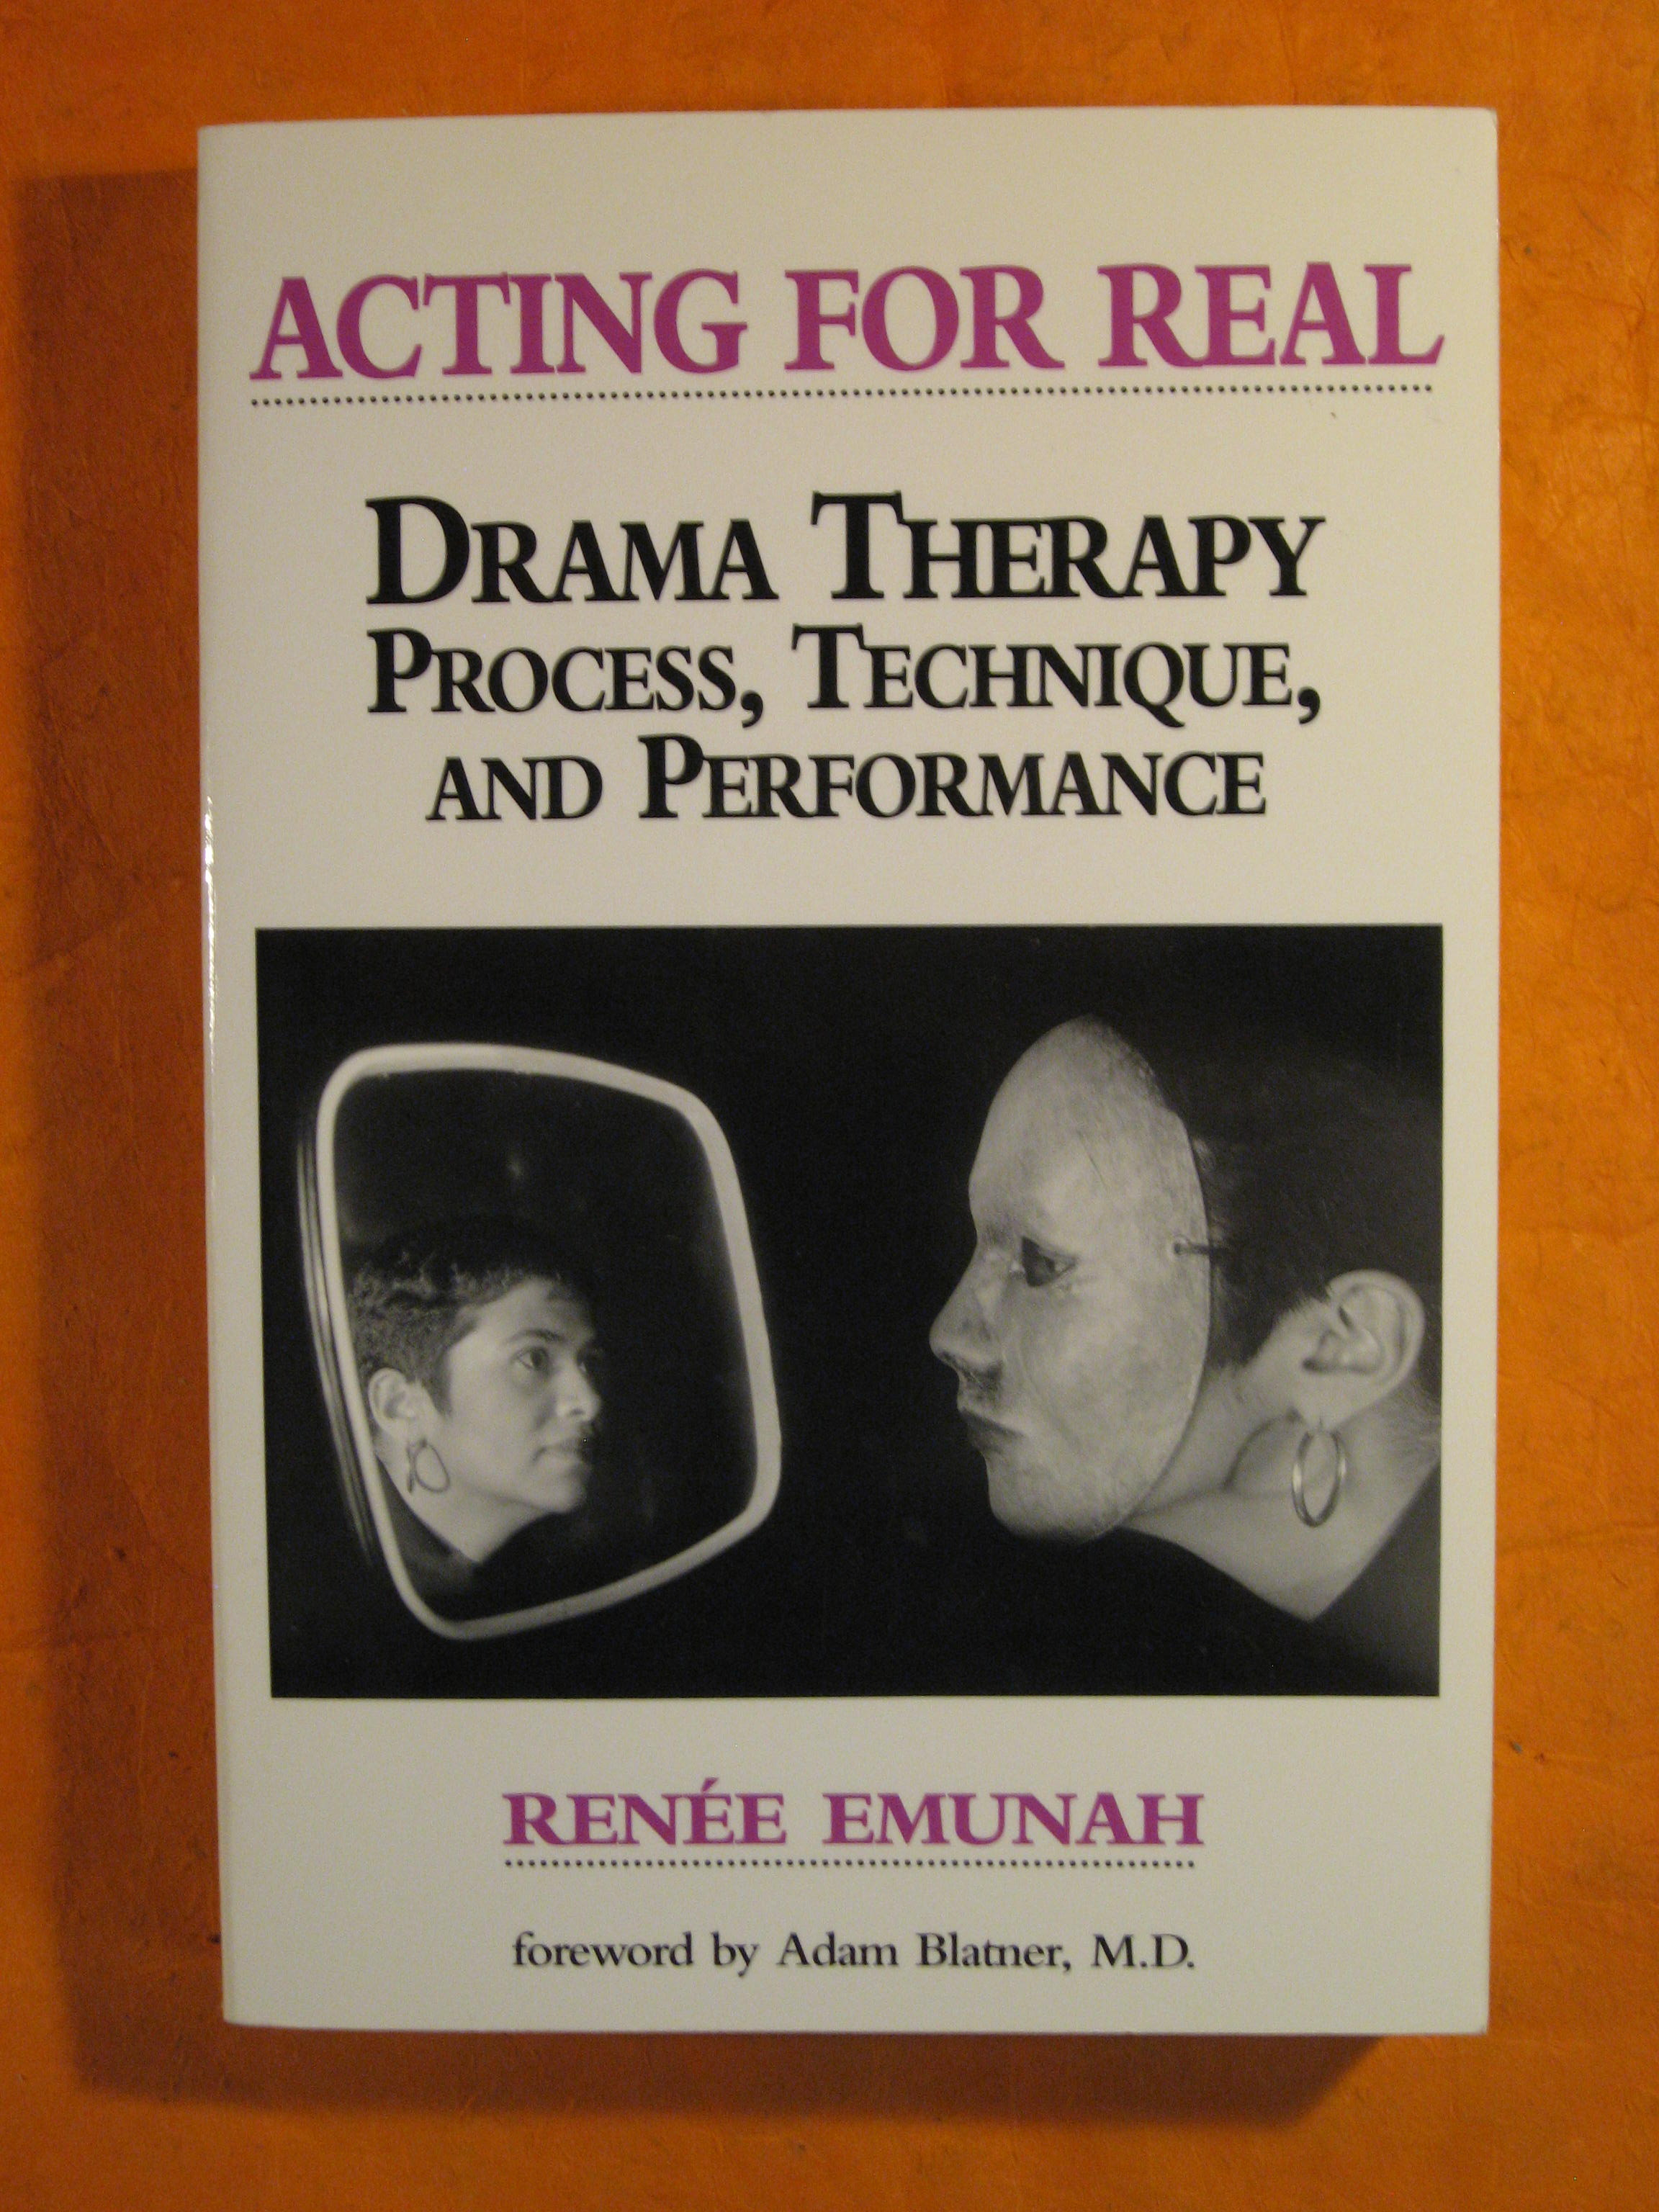 Image for Acting For Real: Drama Therapy Process, Technique, and Performance